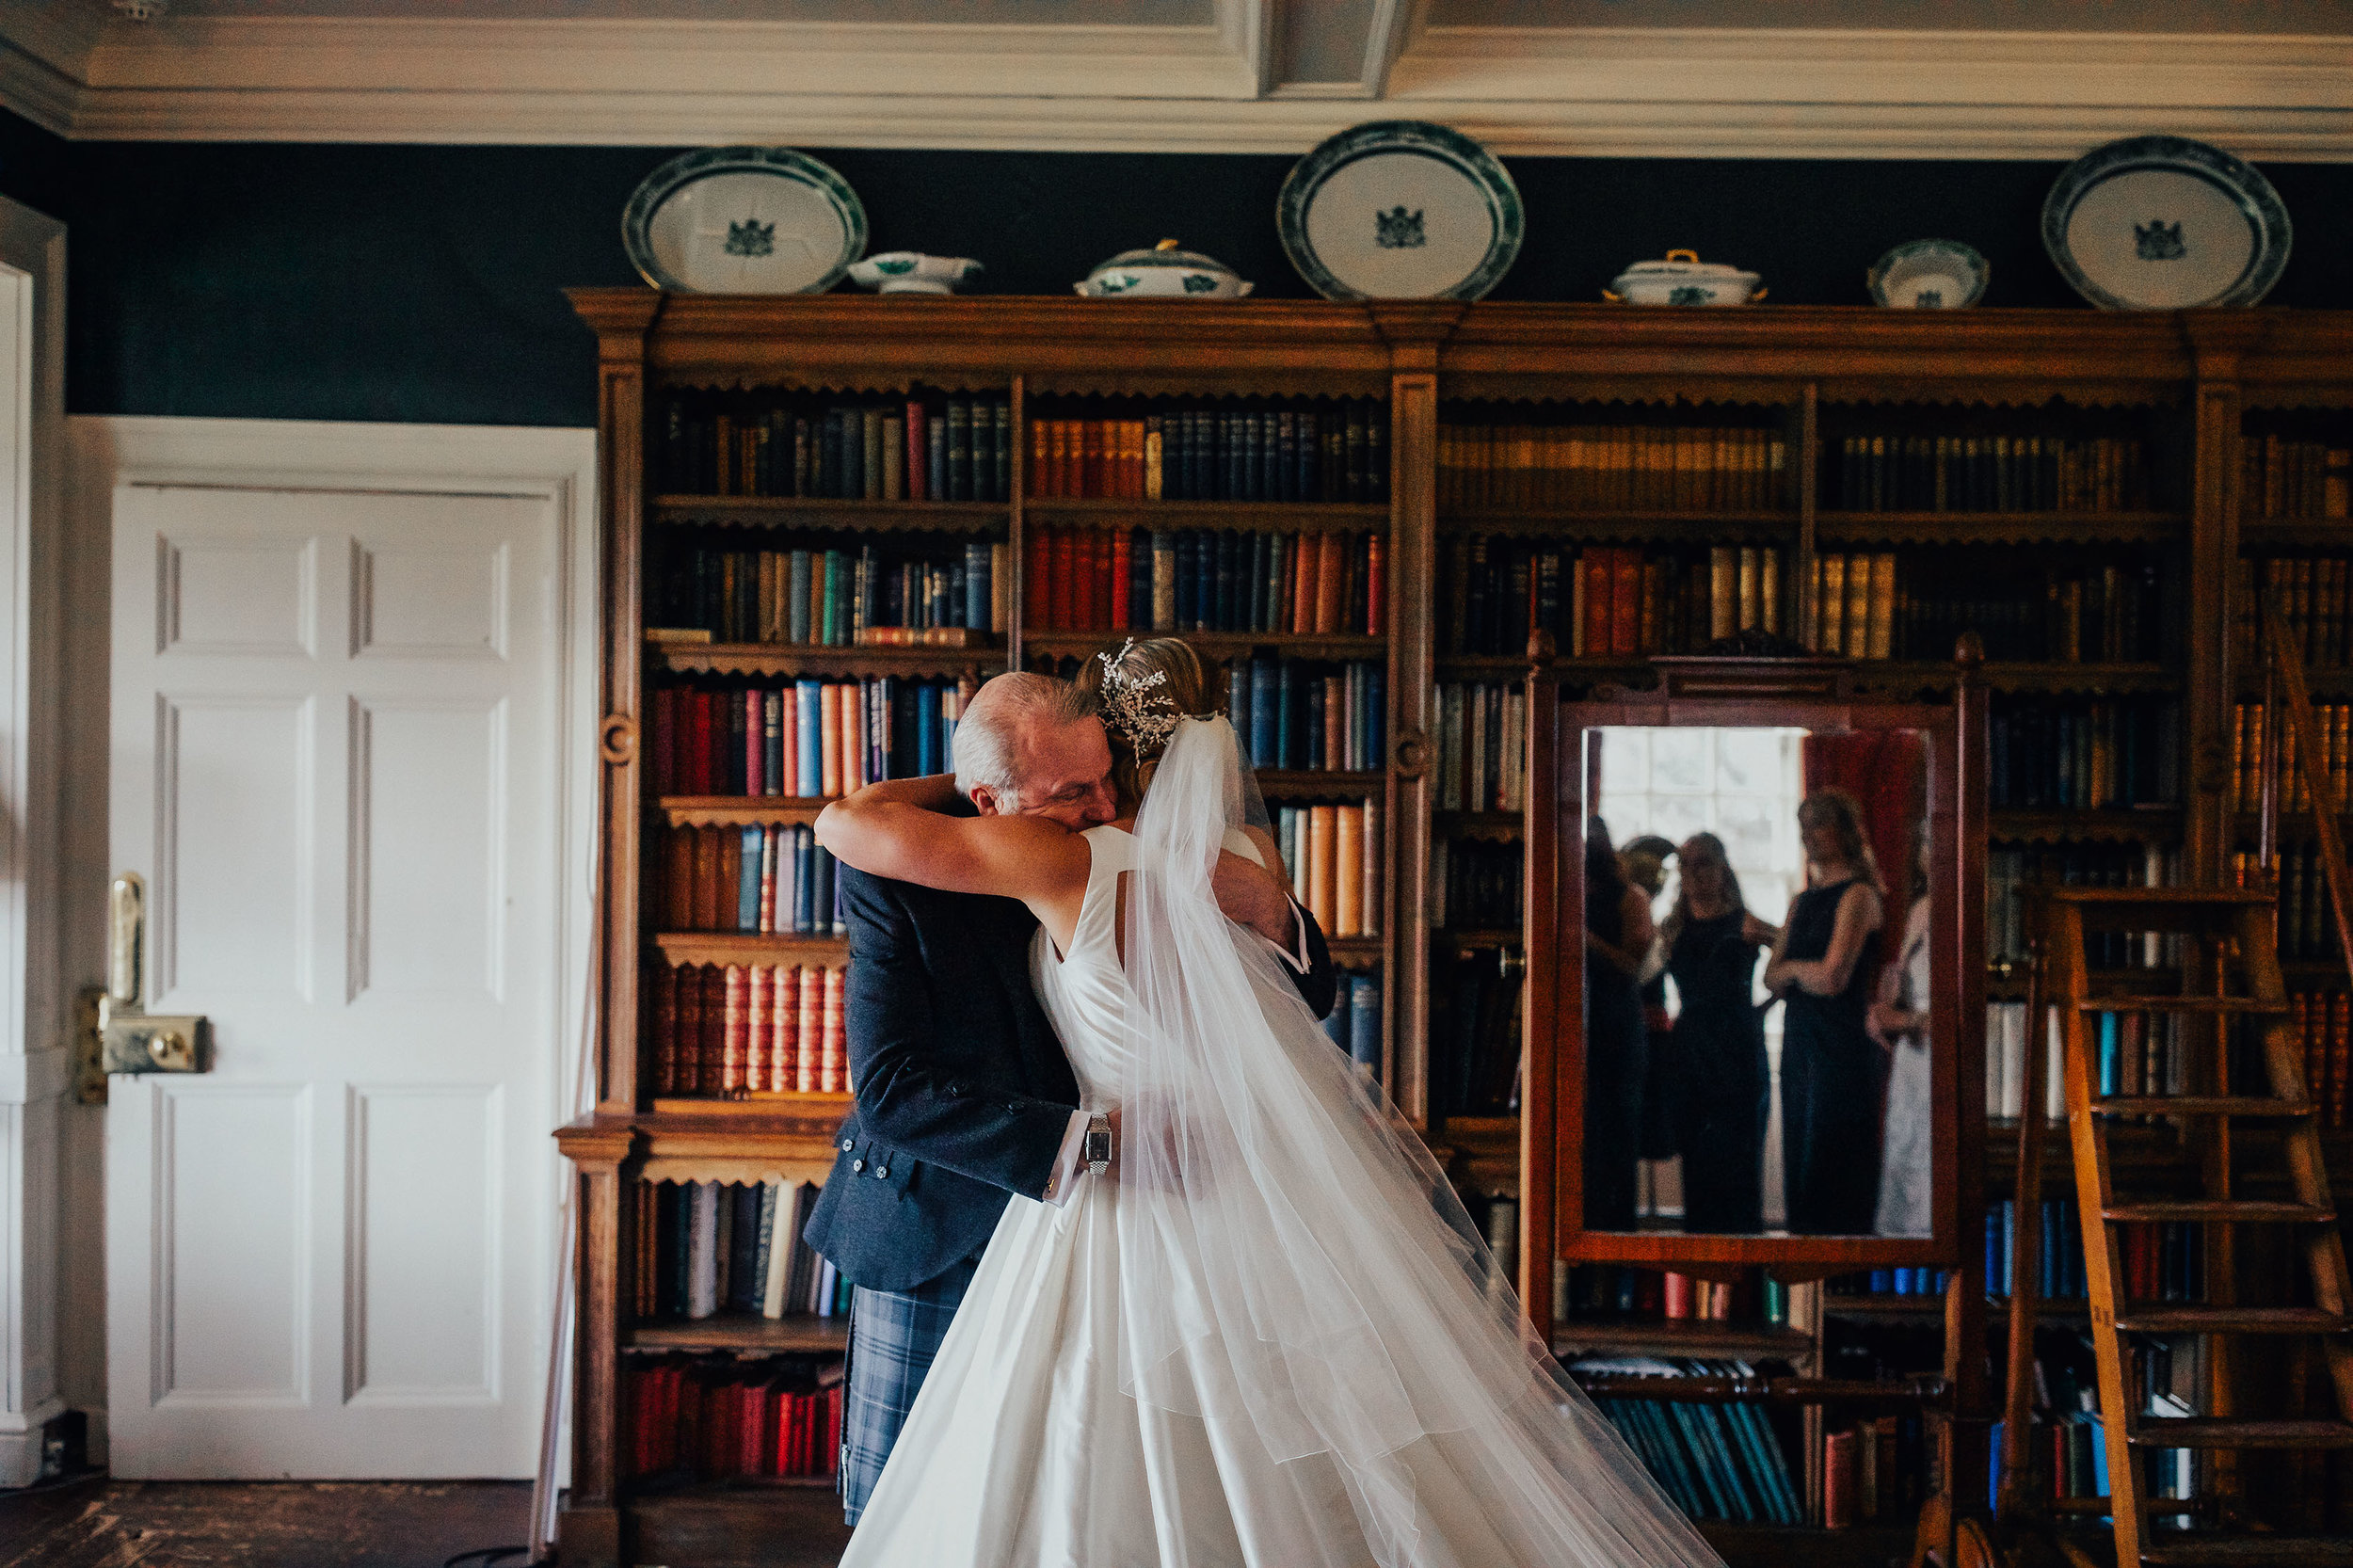 PJ_PHILLIPS_PHOTOGRAPHY_2018_SCOTLAND_WEDDING_PHOTOOGRAPHER_214.jpg